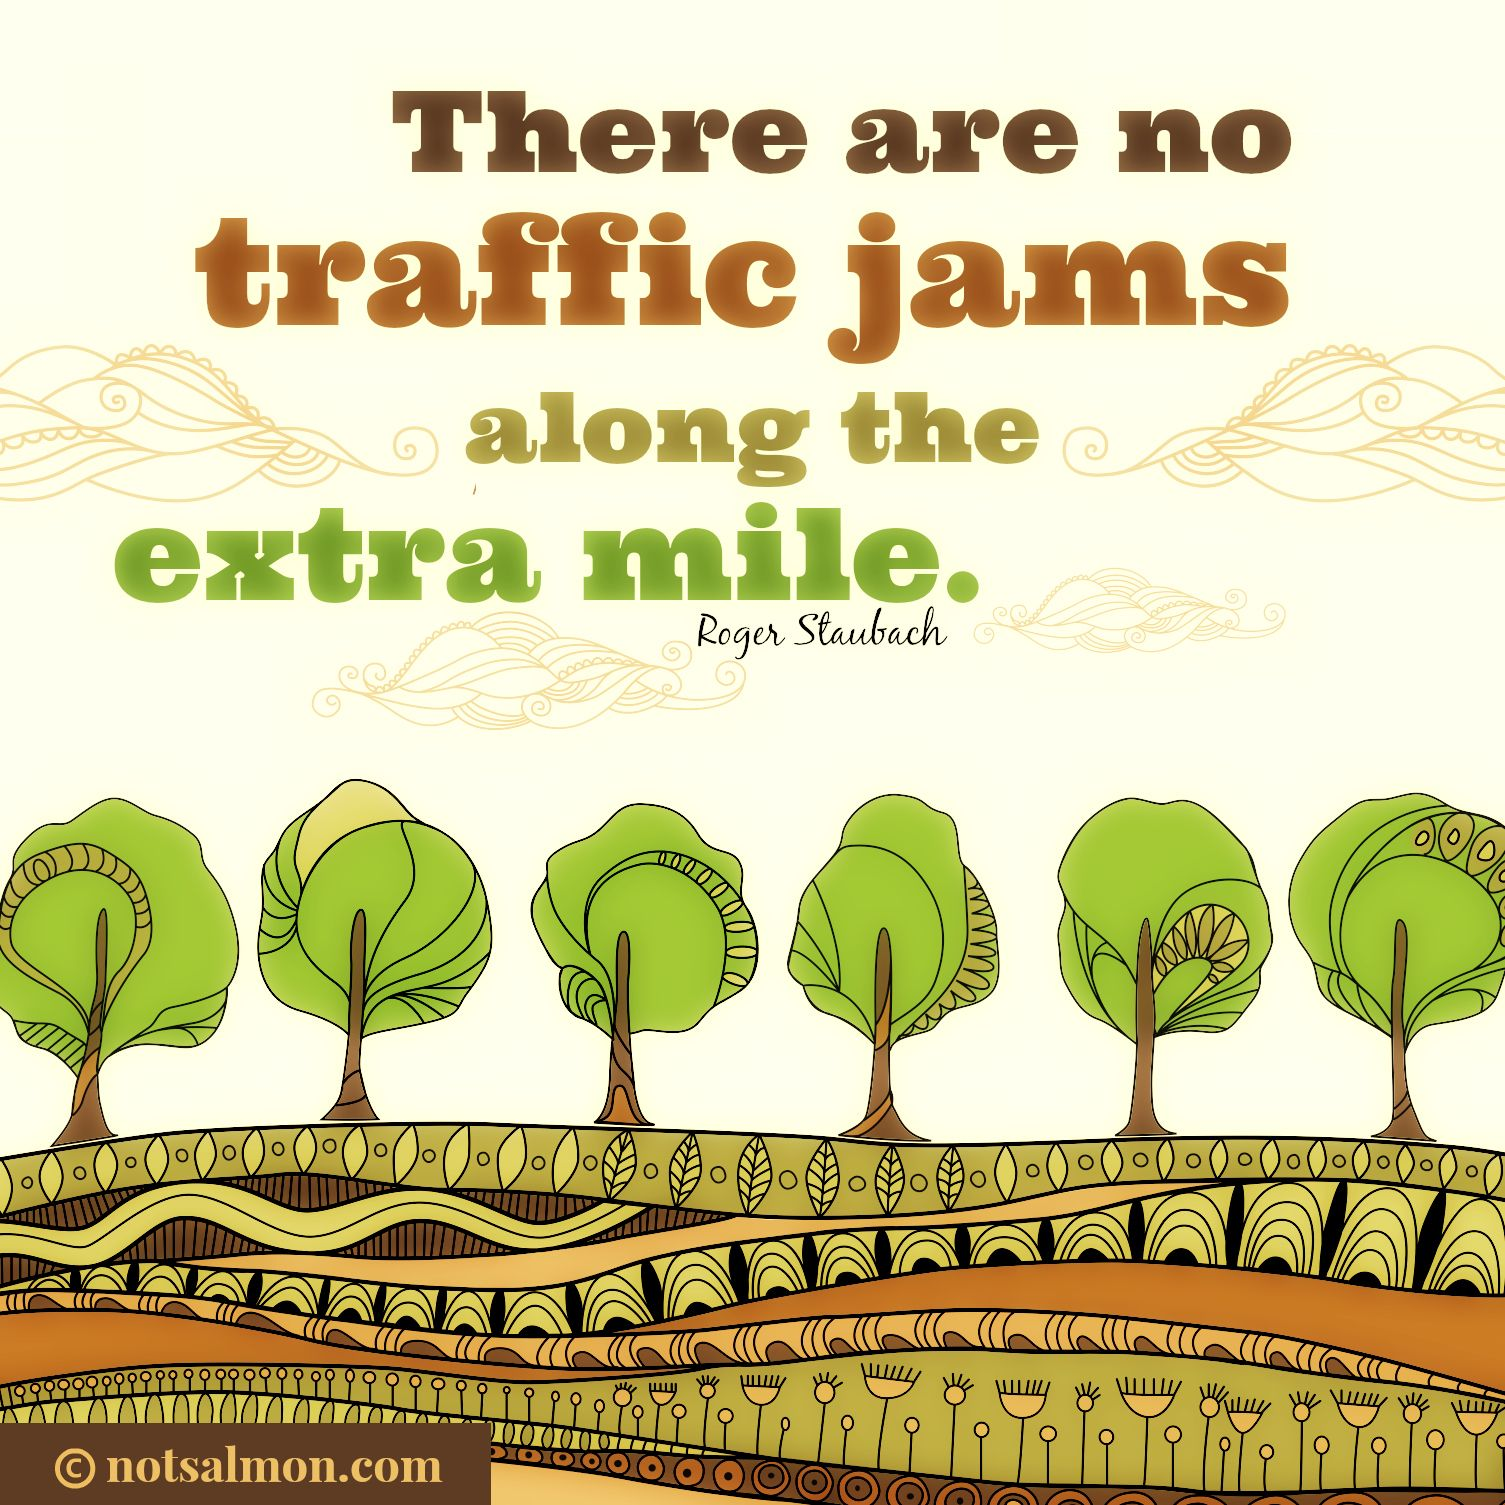 000 There are no traffic jams along the extra mile. notsalmon